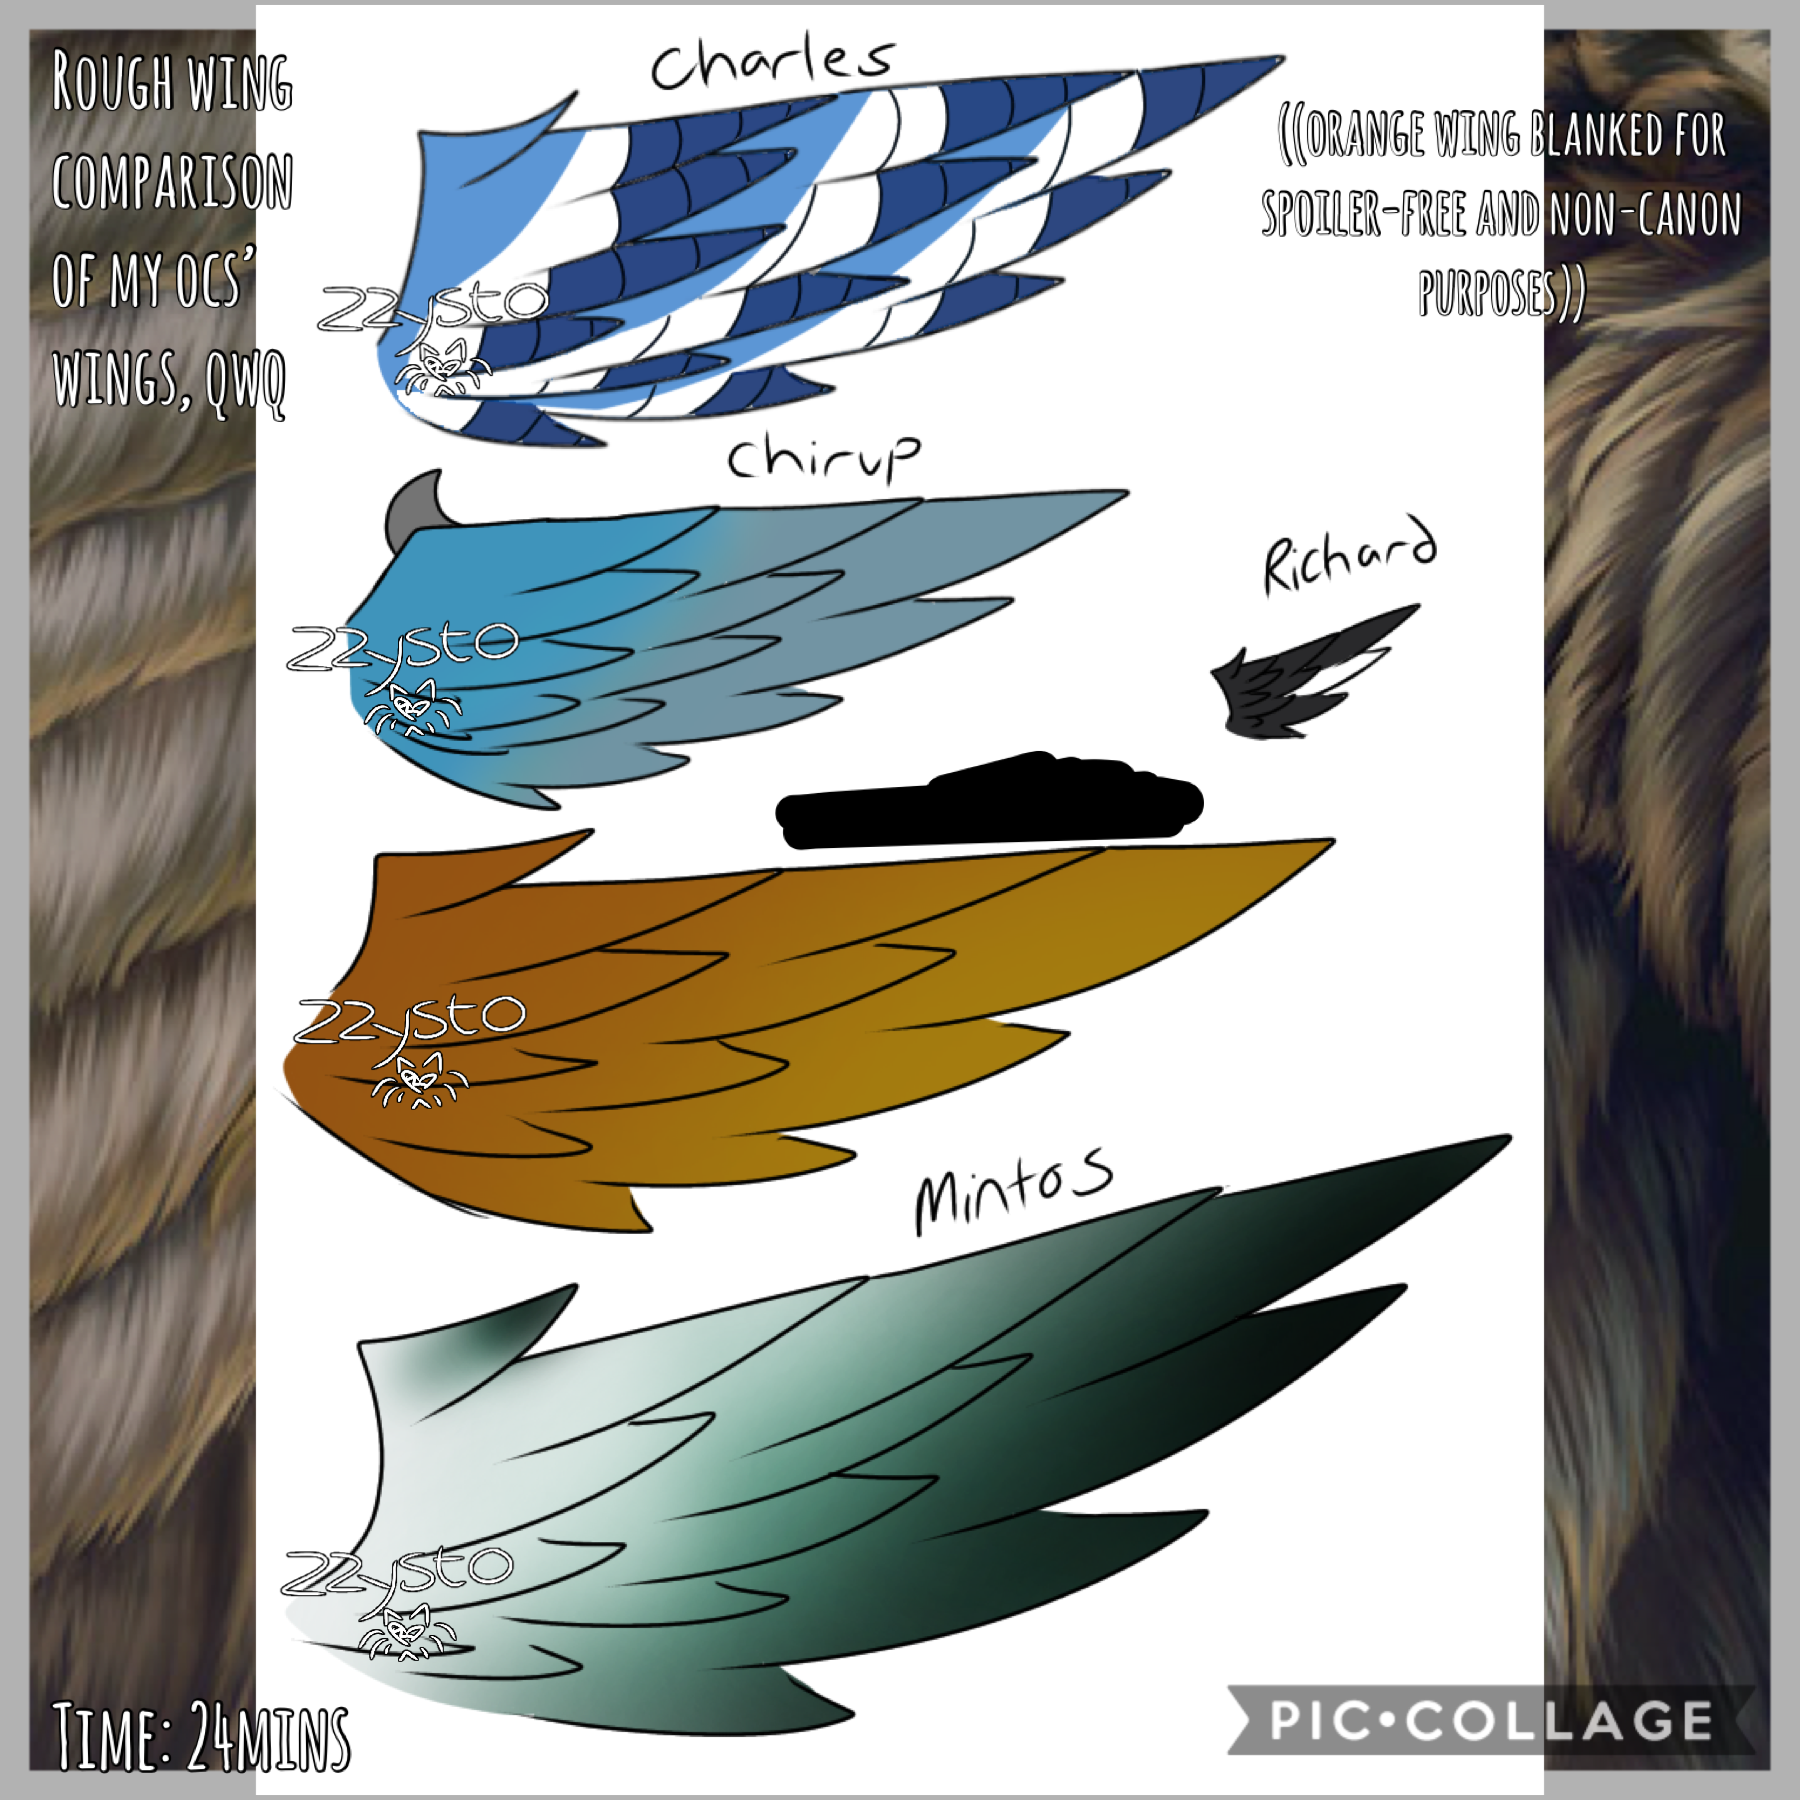 🦅Tap🦅 I've had an obsession with drawing wings recently,, qwq Oh, I finally finished writing up my original harpy species profile..! If y'all are interested, I'll post it tomorrow when I have time (it's uh long, oops) How have y'all been too? I feel like